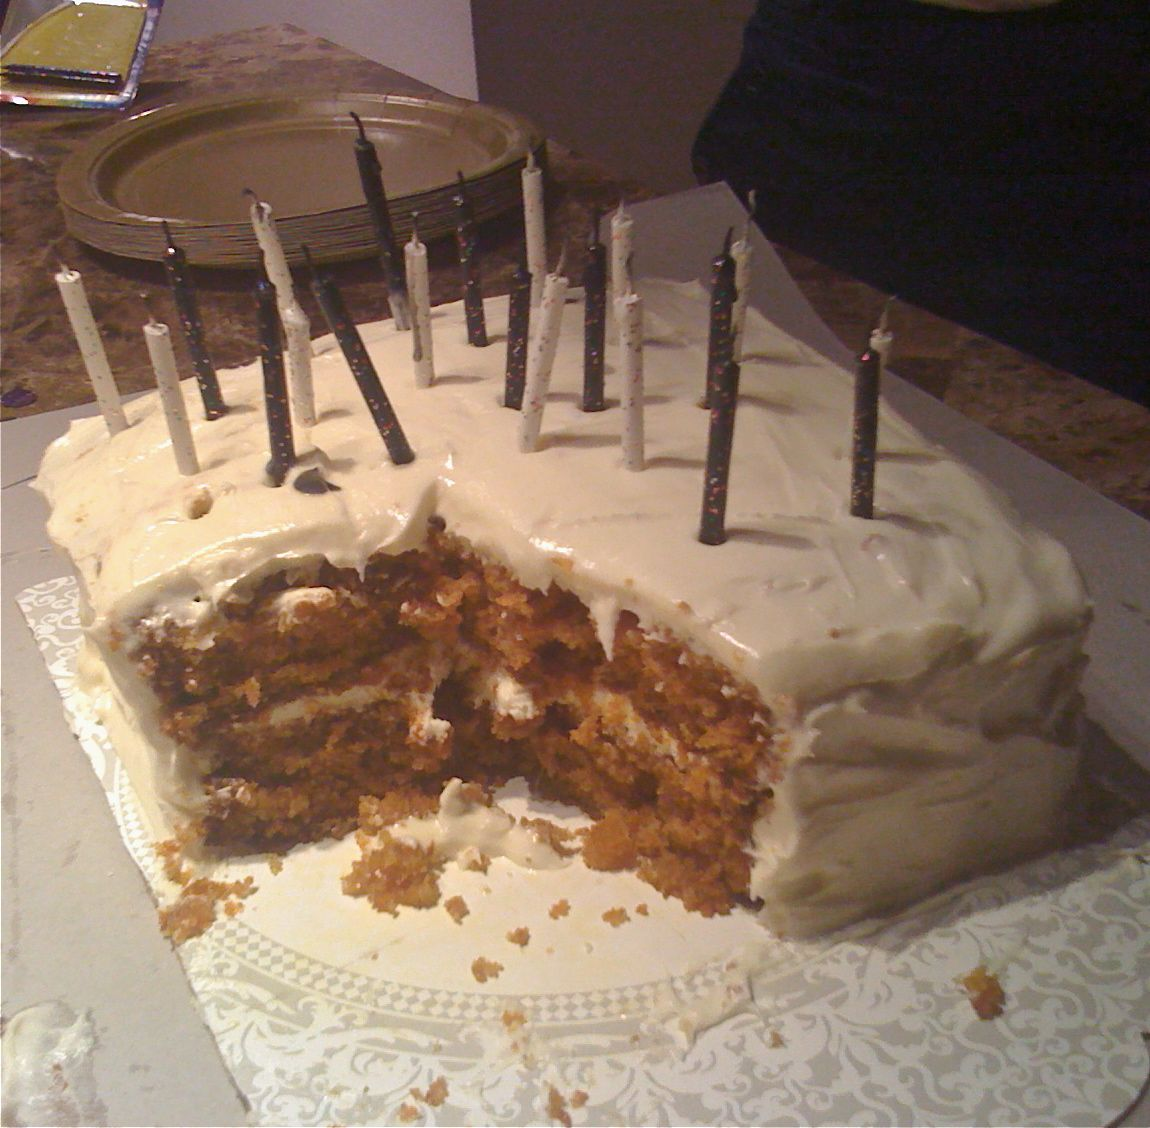 Carrot Cake Middle Section